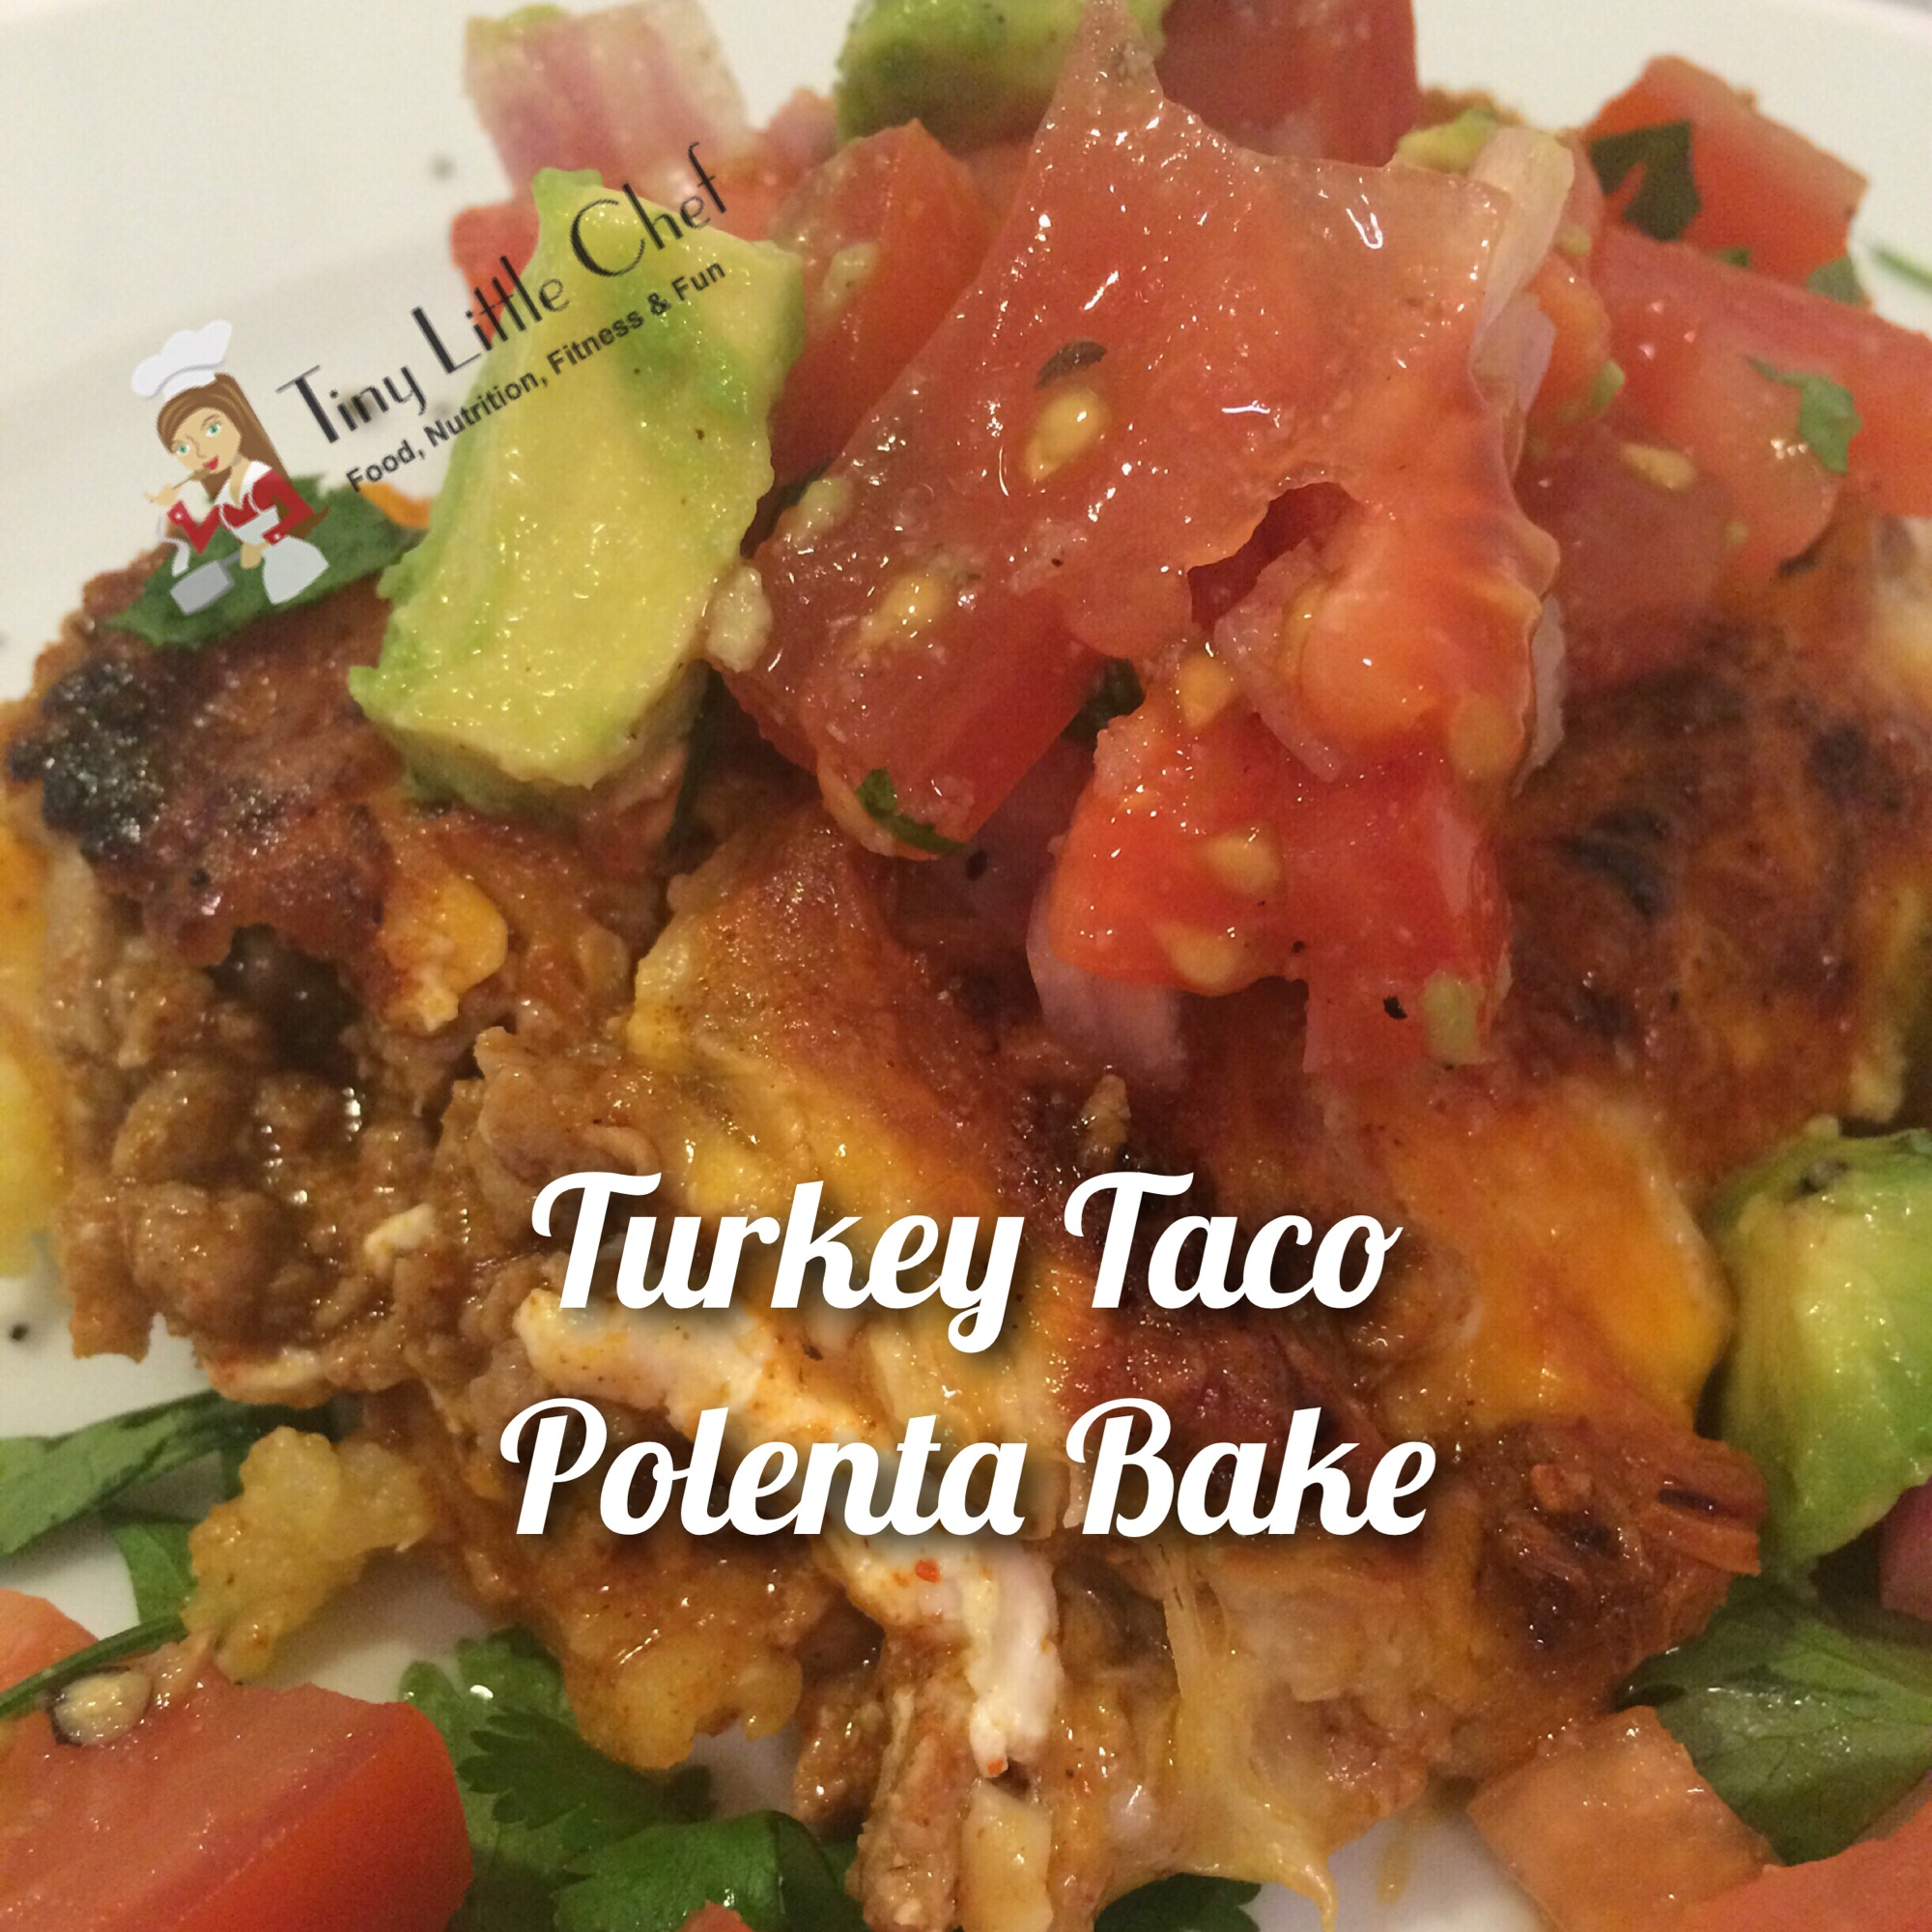 Tiny Little Chef Turkey Taco Polenta Bake